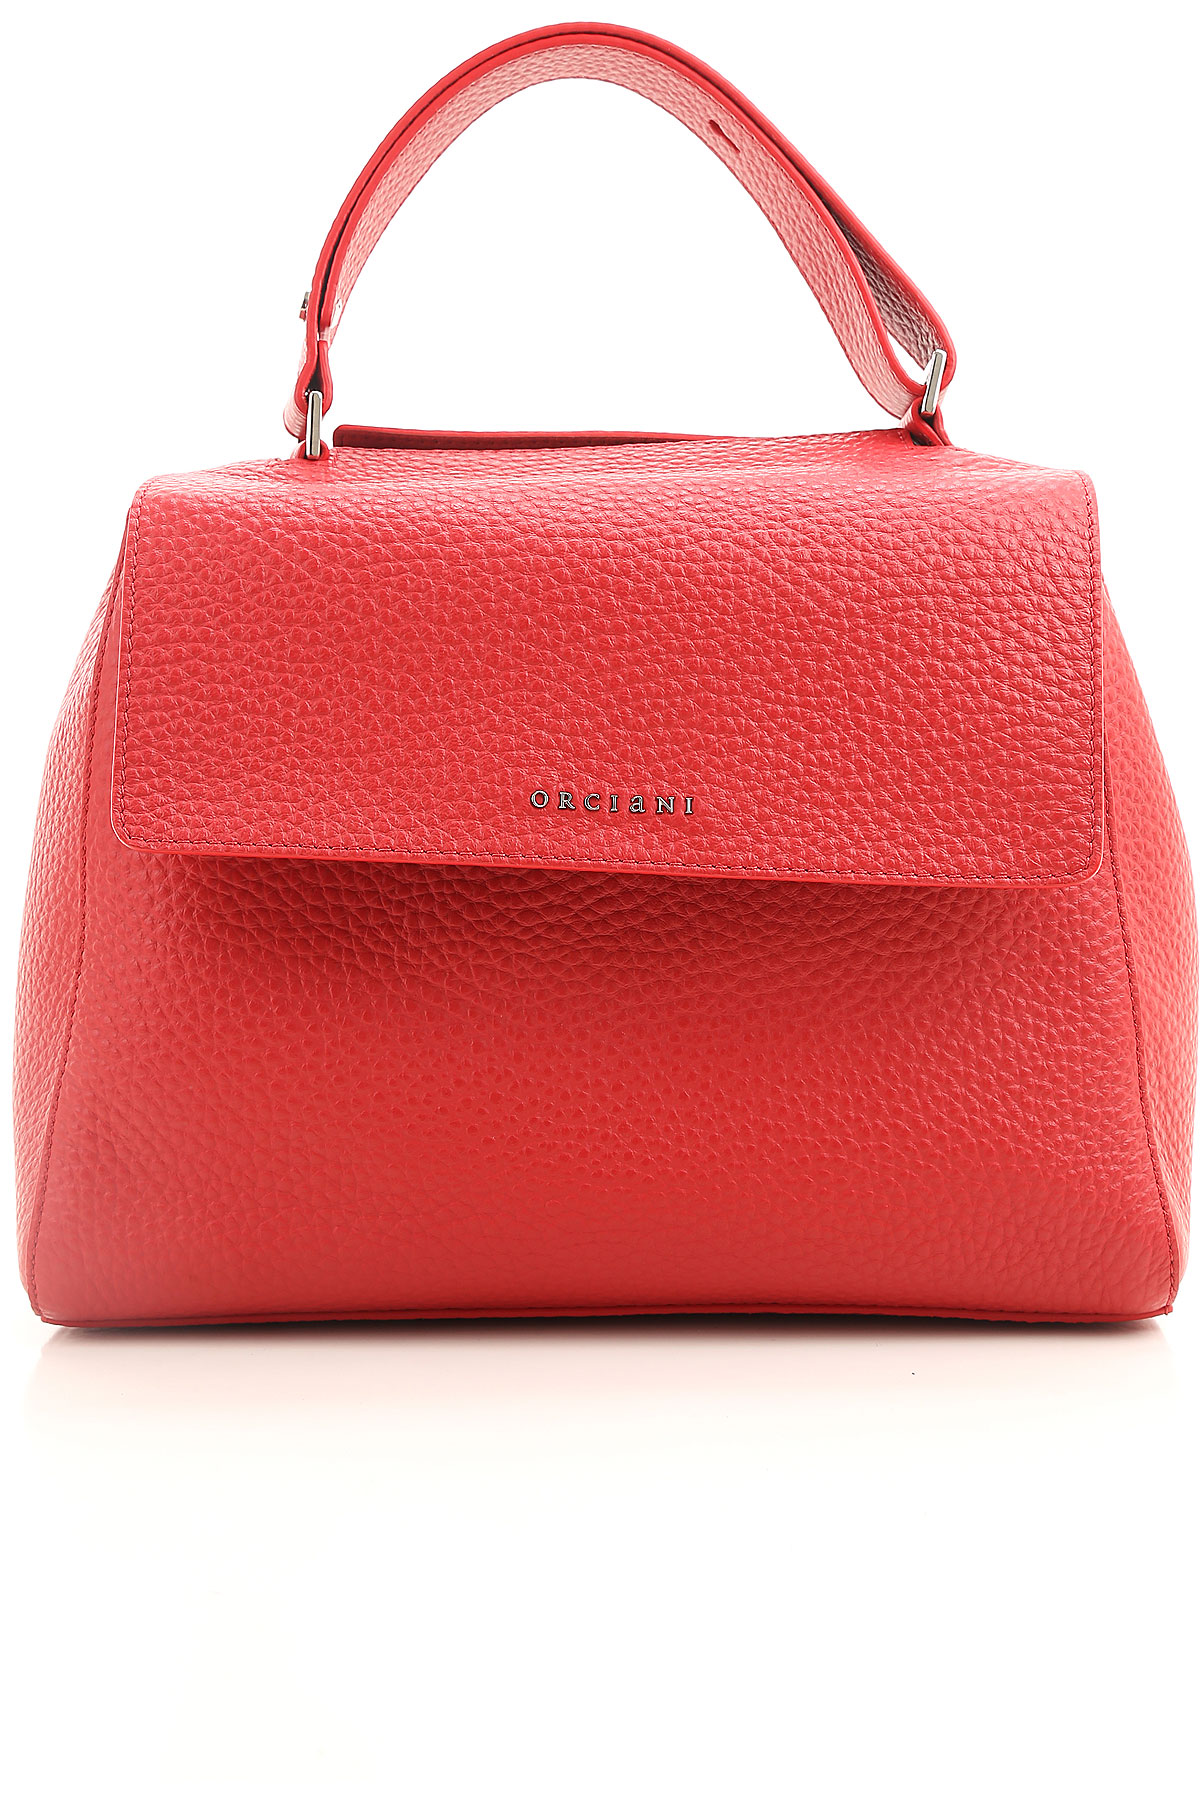 Image of Orciani Handbags, Strawberry Red, Leather, 2017